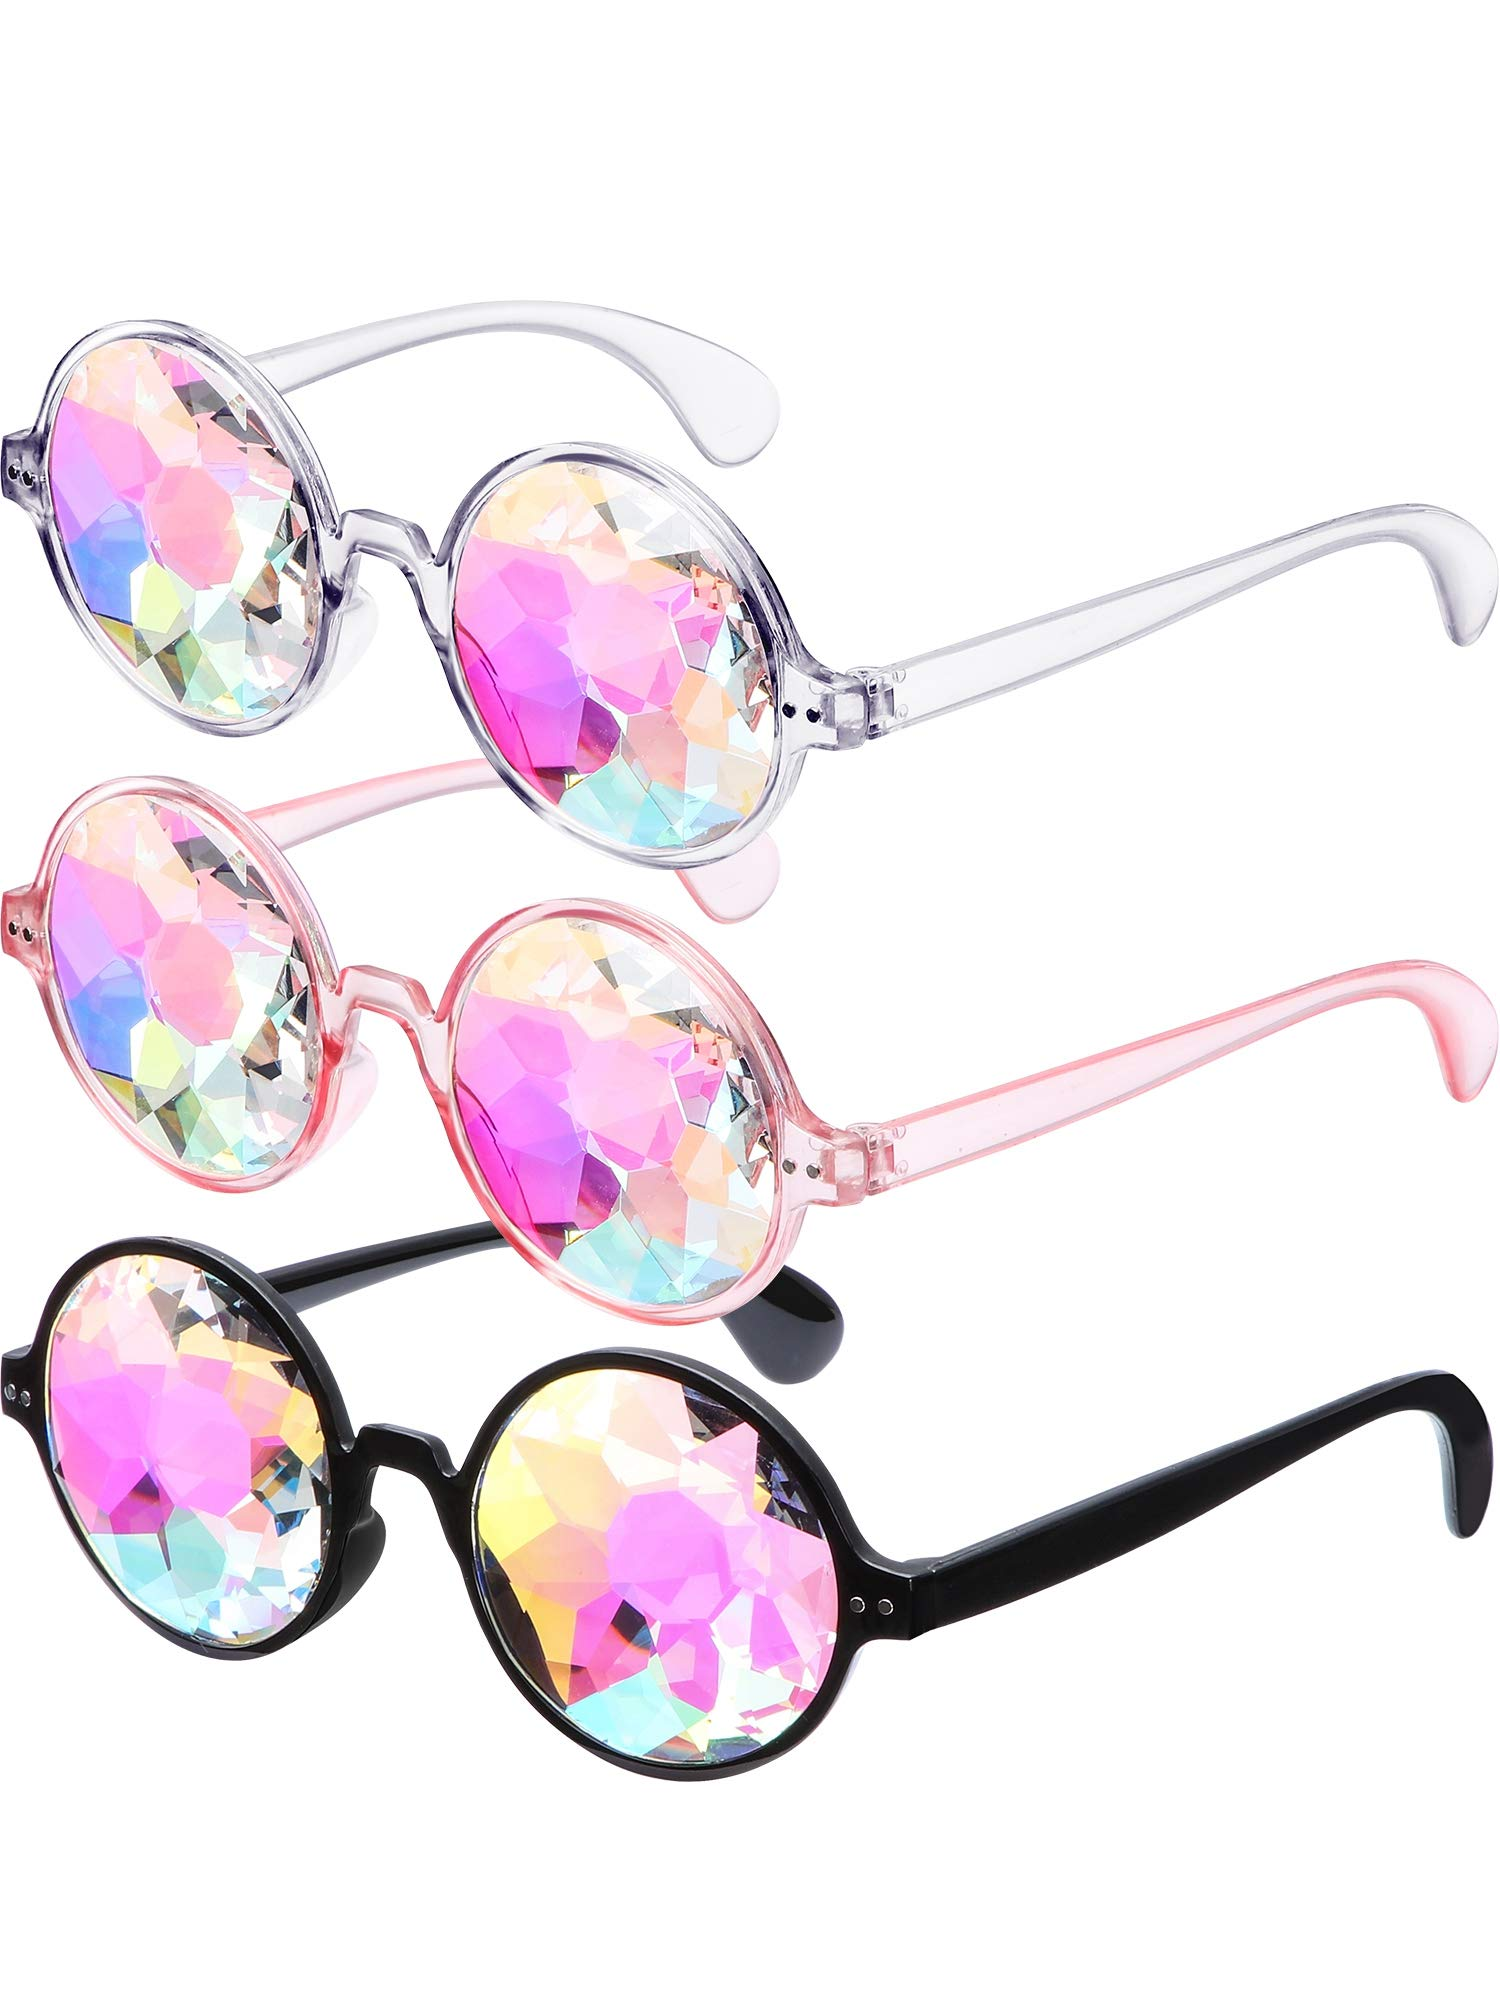 Kaleidoscope Goggles Rainbow Prism Sunglasses with Glasses Cloth for Rave Party Festival Decoration Favors (White, Pink, Black, 3 Pieces)